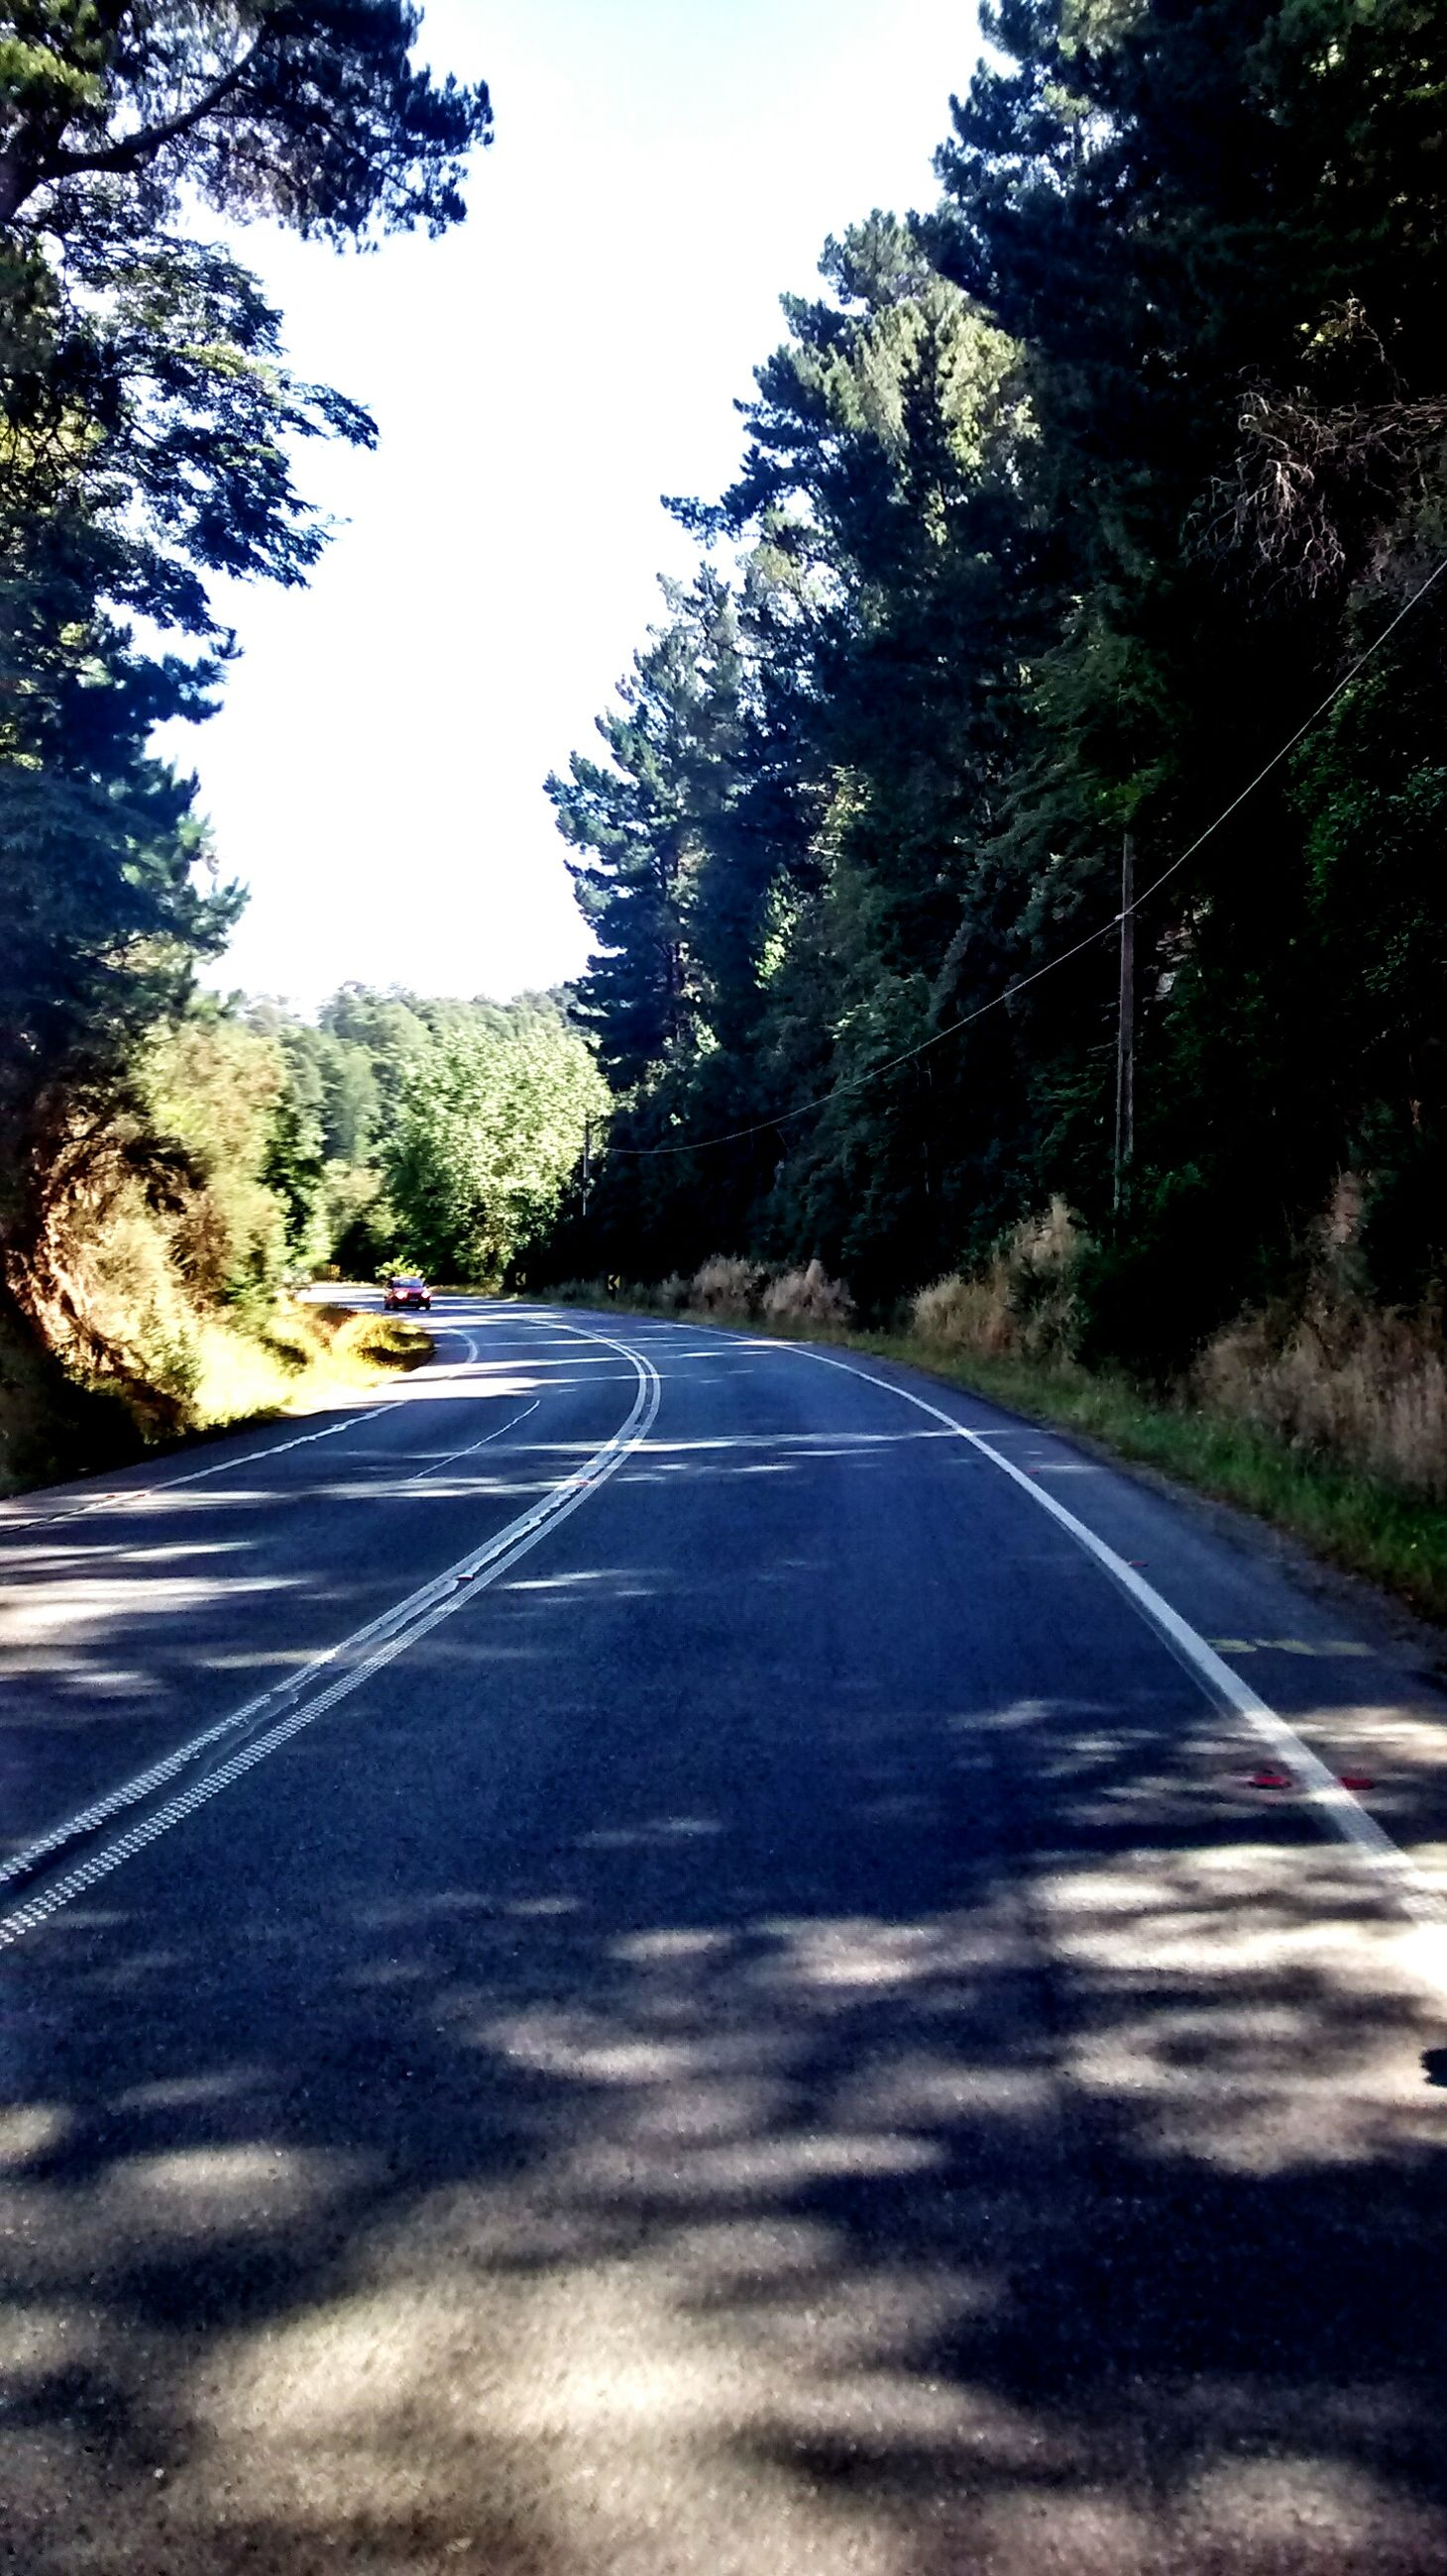 the way forward, transportation, road, road marking, tree, diminishing perspective, vanishing point, country road, asphalt, empty road, empty, street, sky, tranquility, dividing line, long, double yellow line, clear sky, day, nature